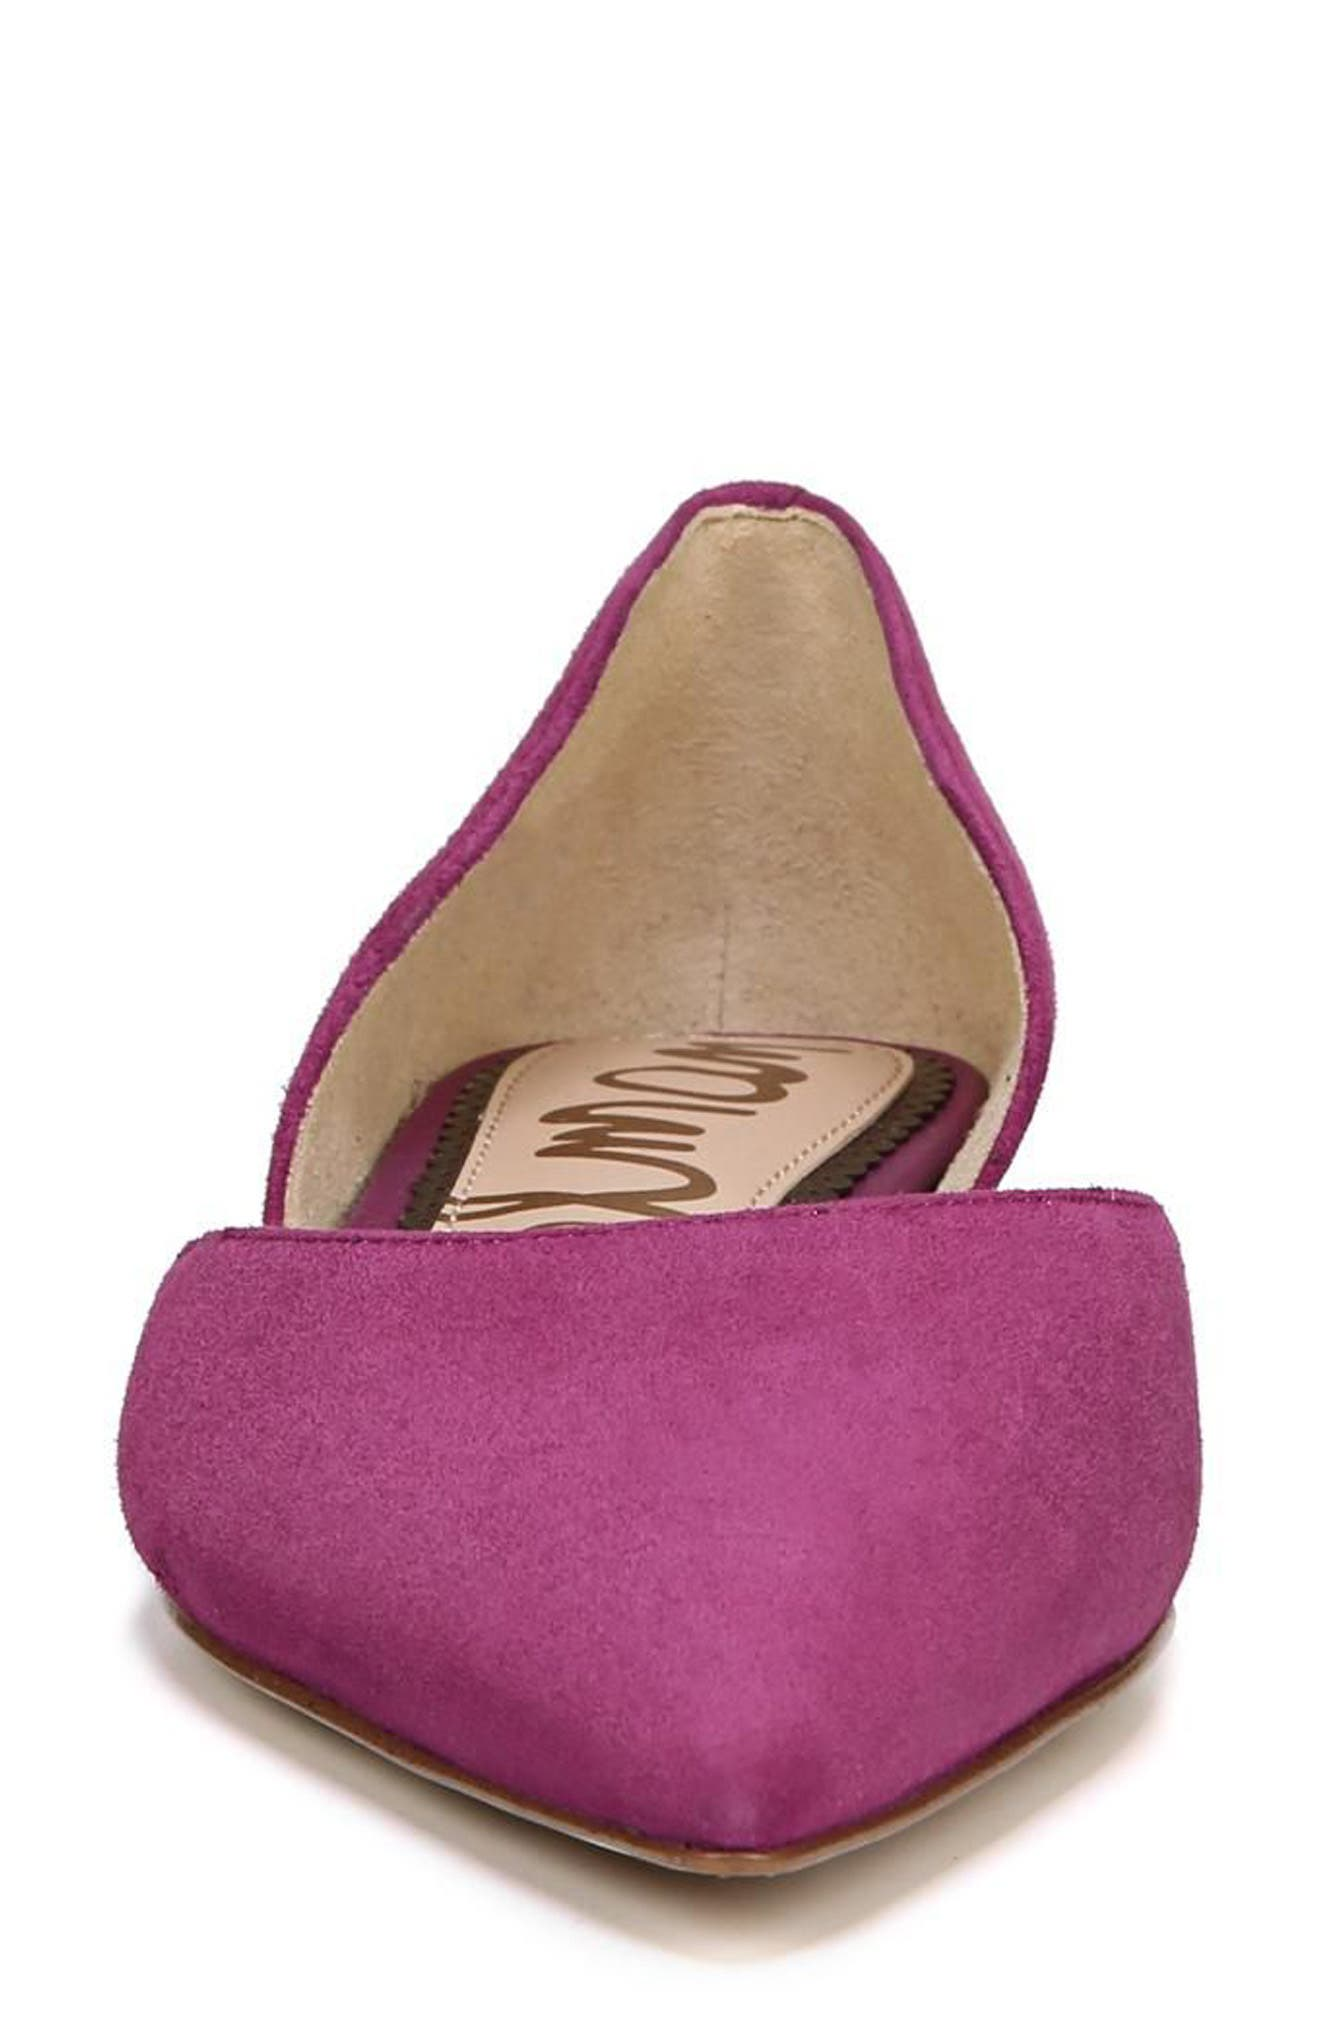 Rodney Pointy Toe d'Orsay Flat,                             Alternate thumbnail 4, color,                             PURPLE PLUM SUEDE